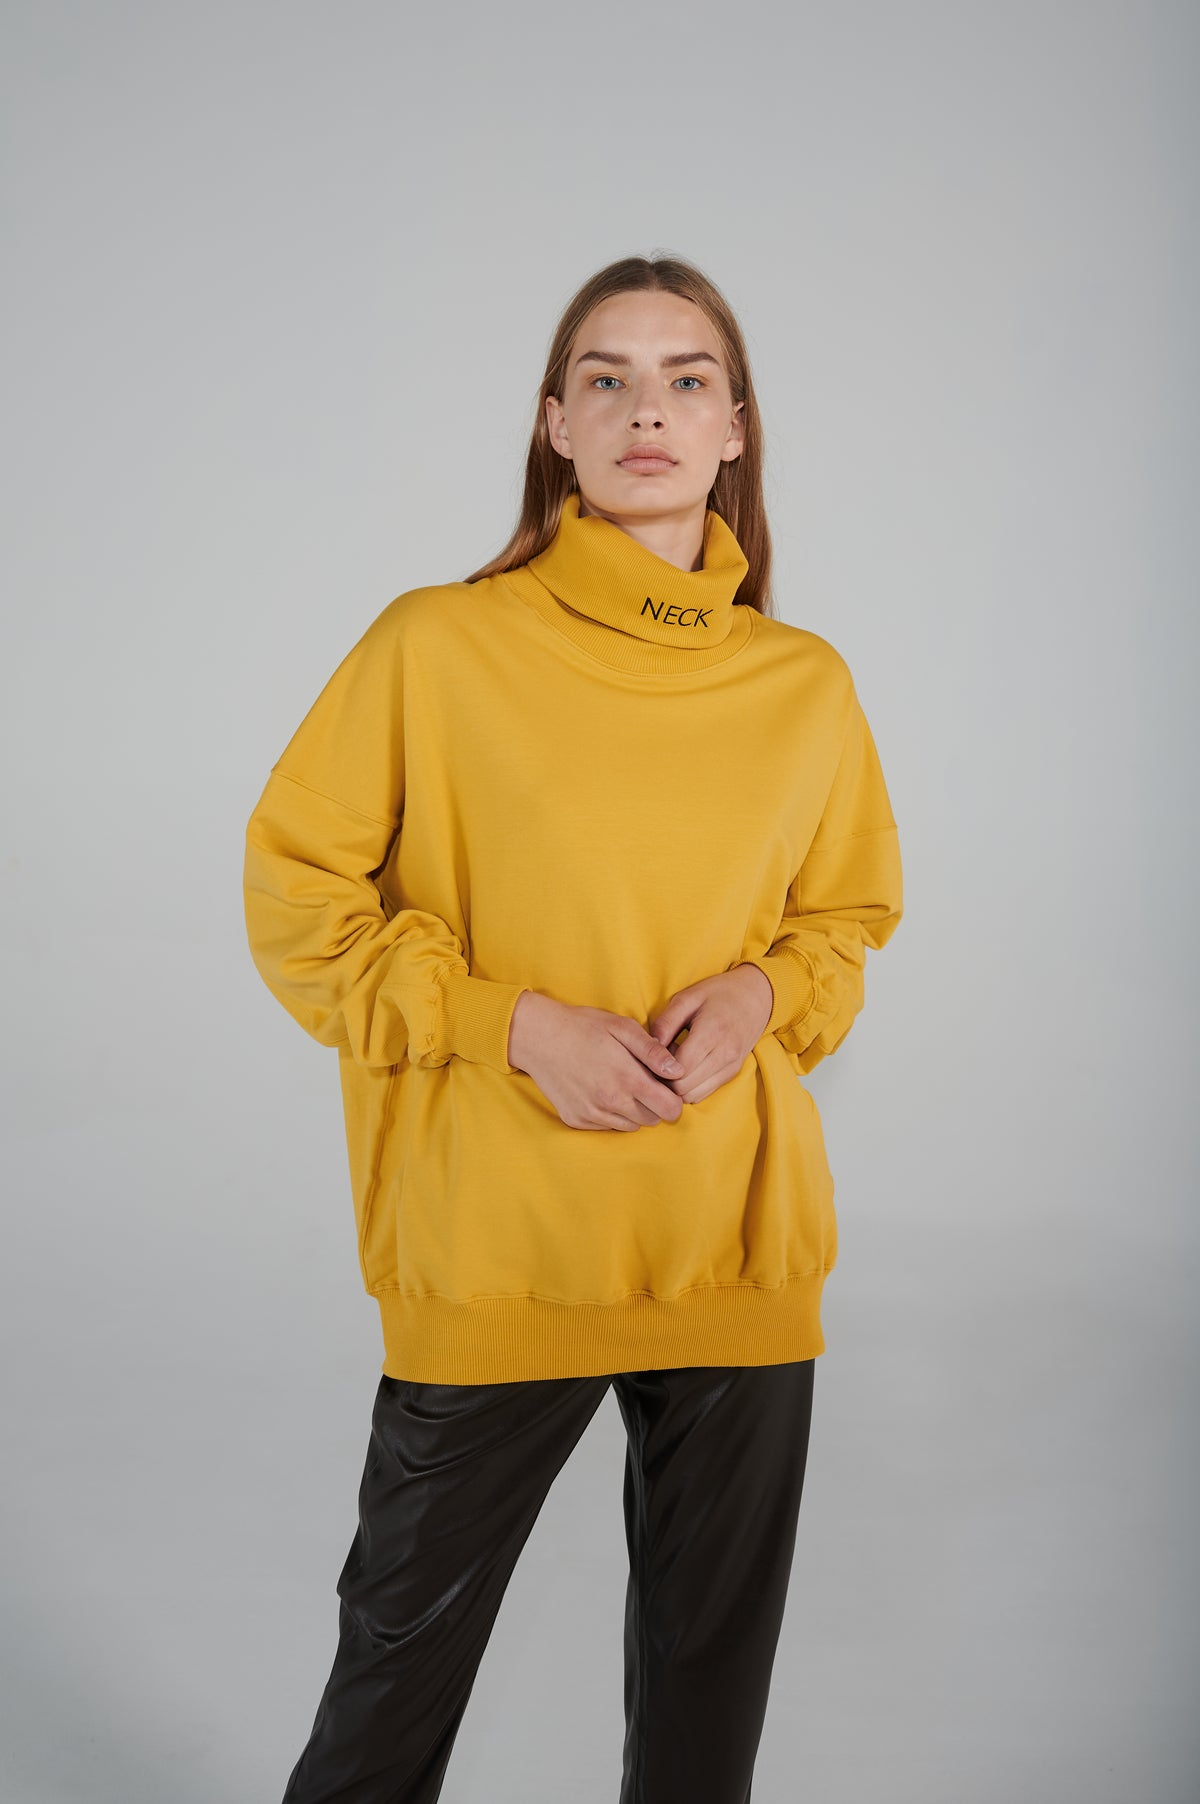 le-slap-details-long-sleeves-dropped-shoulder-line-loose-round-neck.jpg